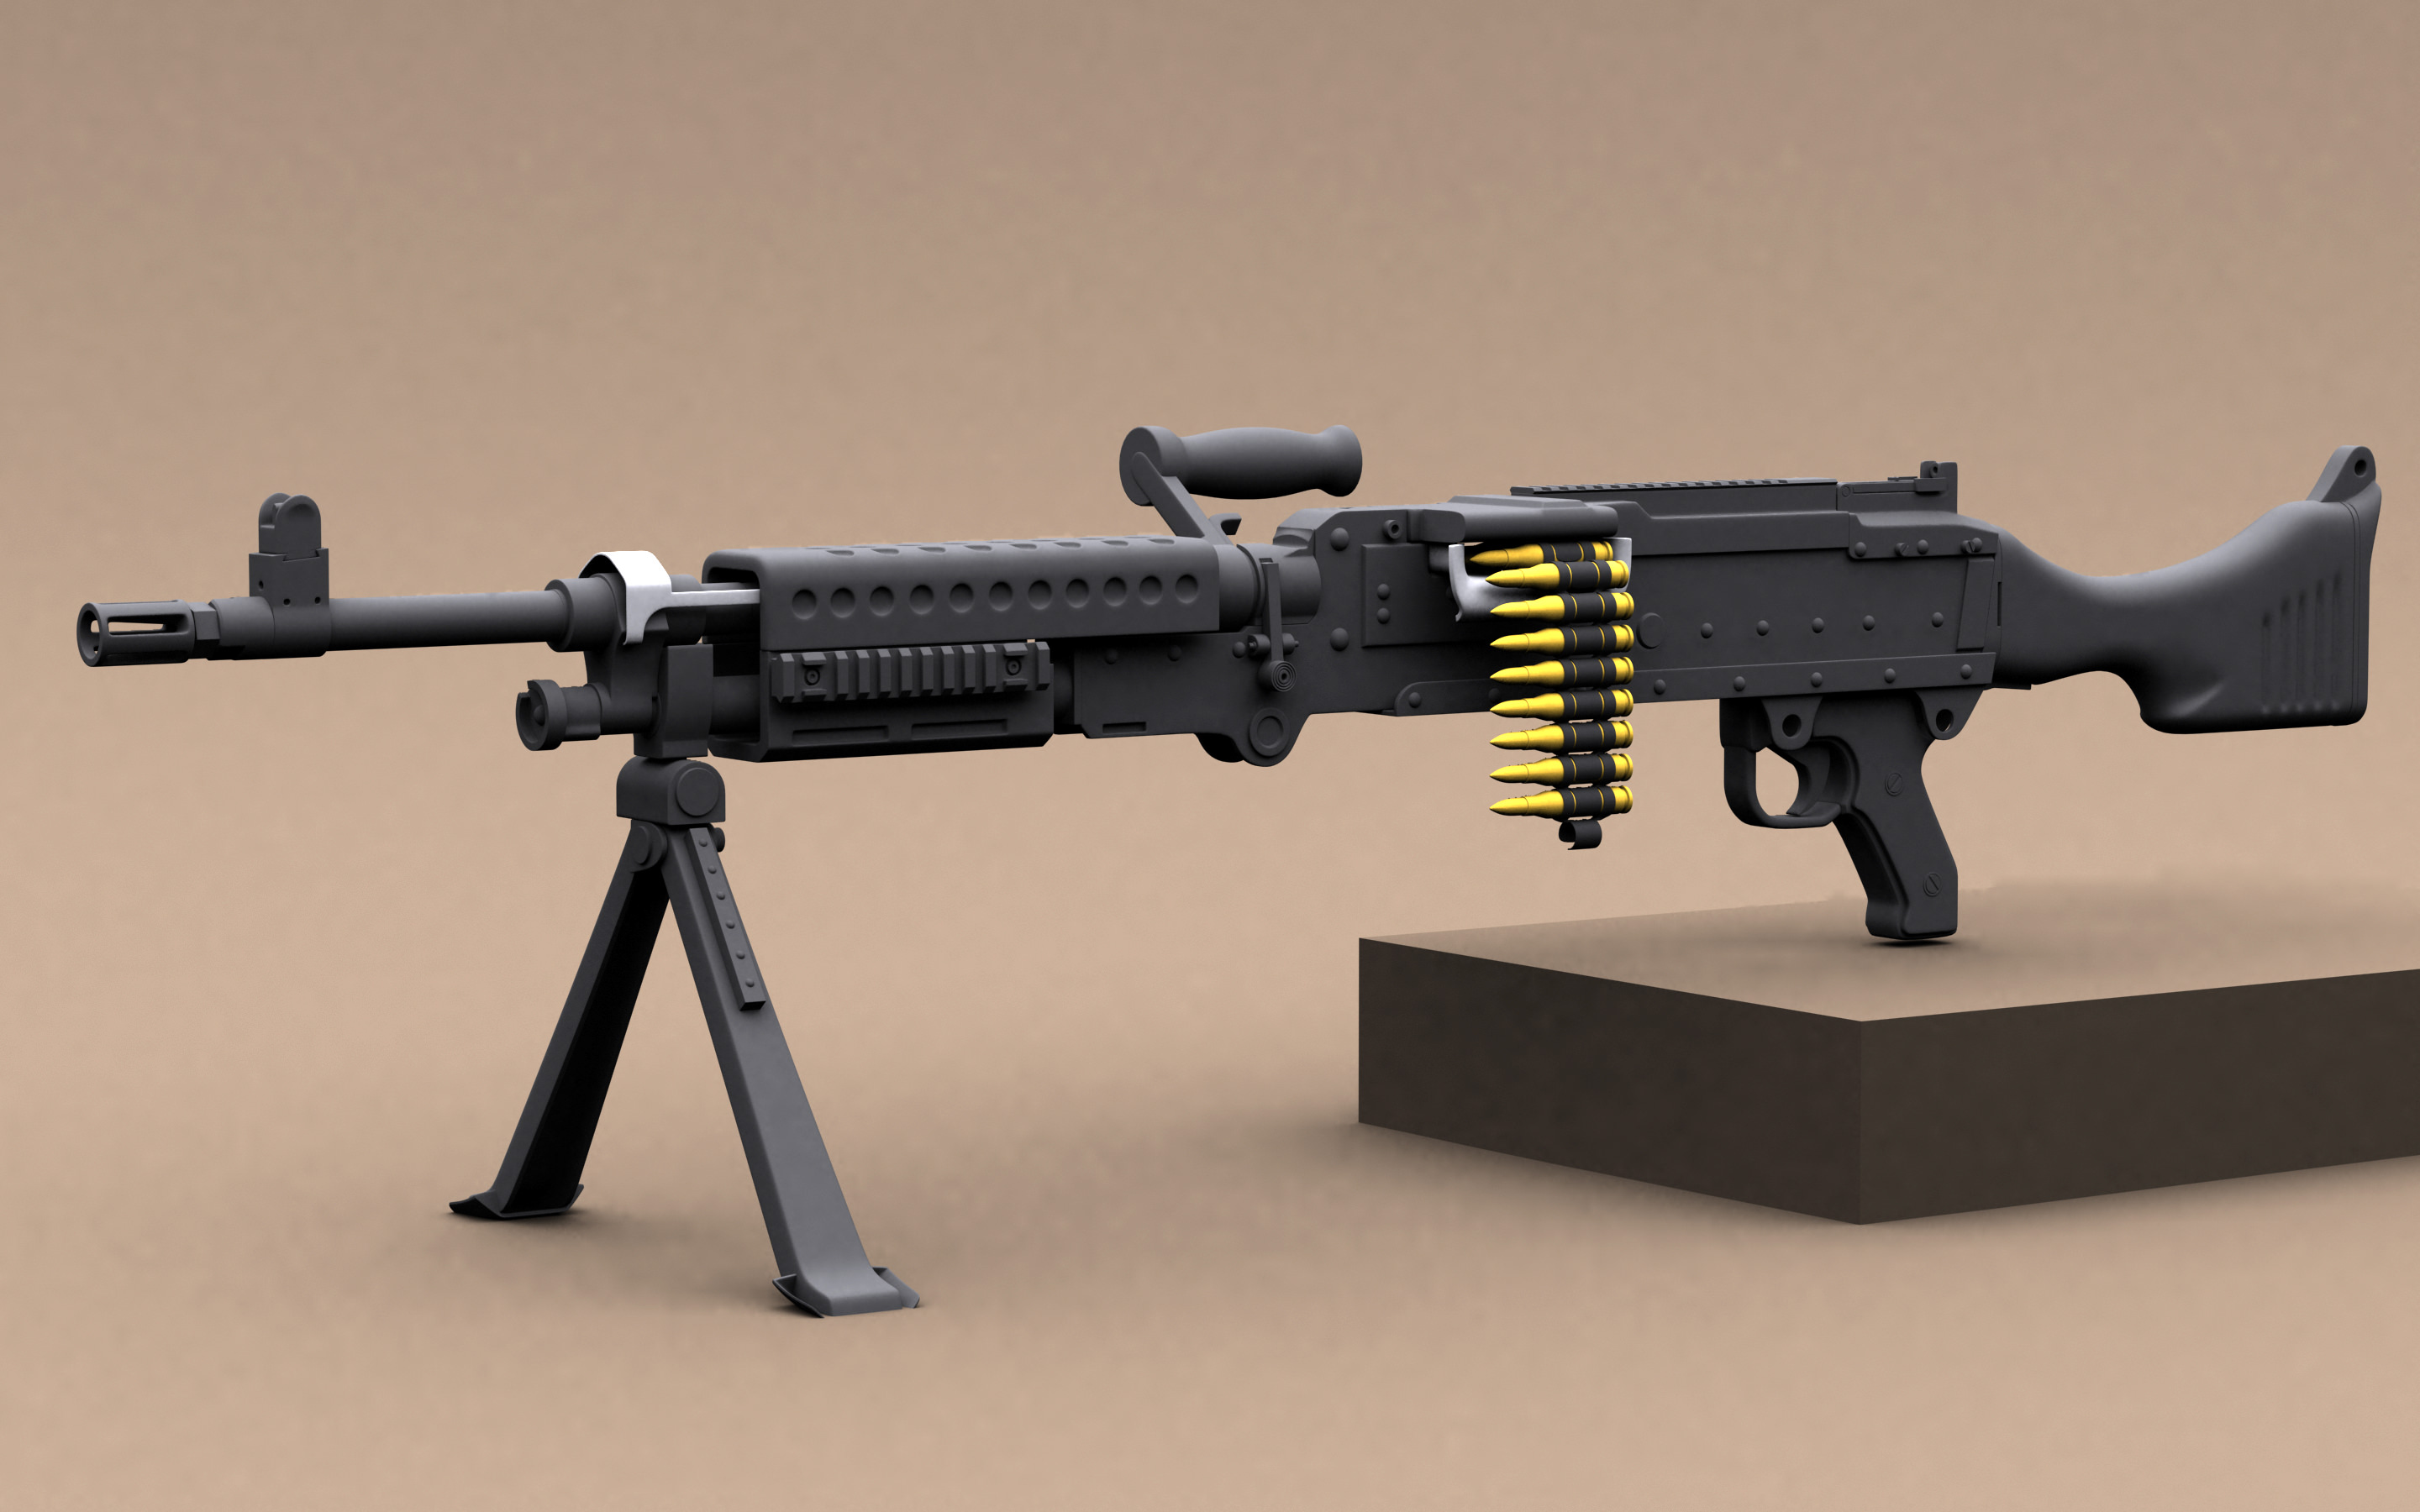 the m240b the weapon of the Military further reading once the soldier understands the weapon the m240b is carried loaded with the bolt locked to the rear in tactical situations where.